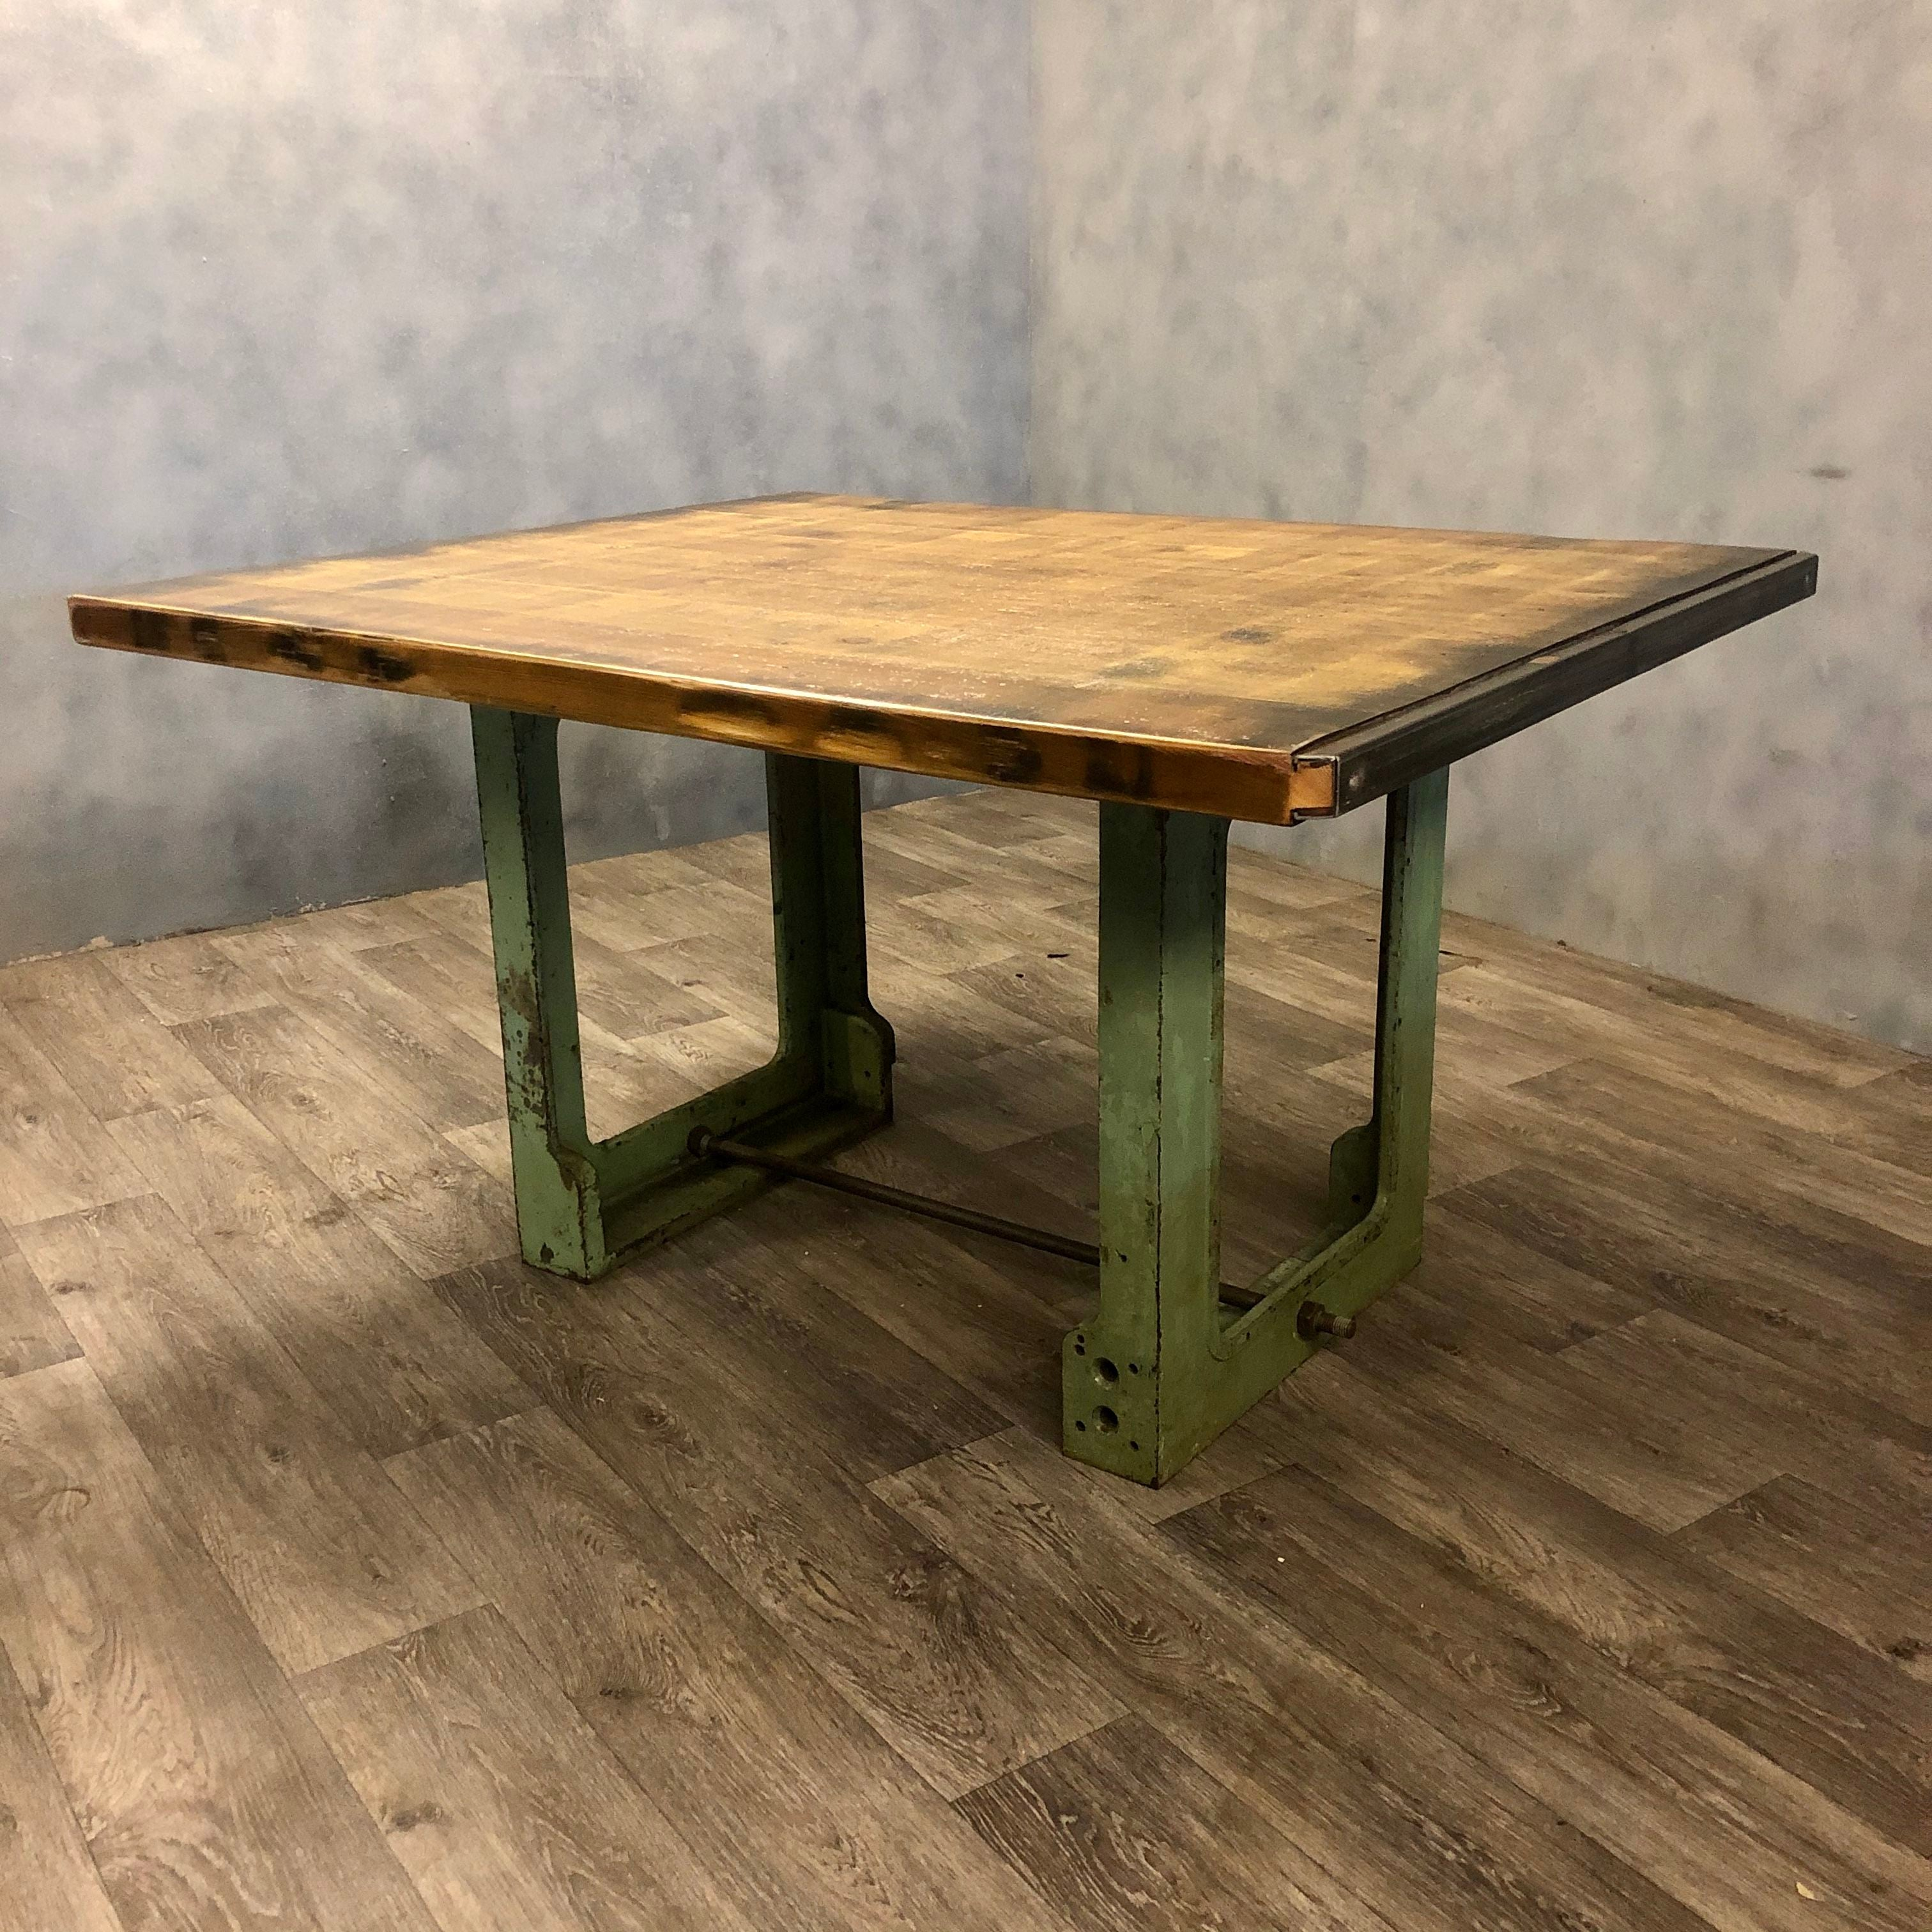 Reclaimed dining table with industrial legs